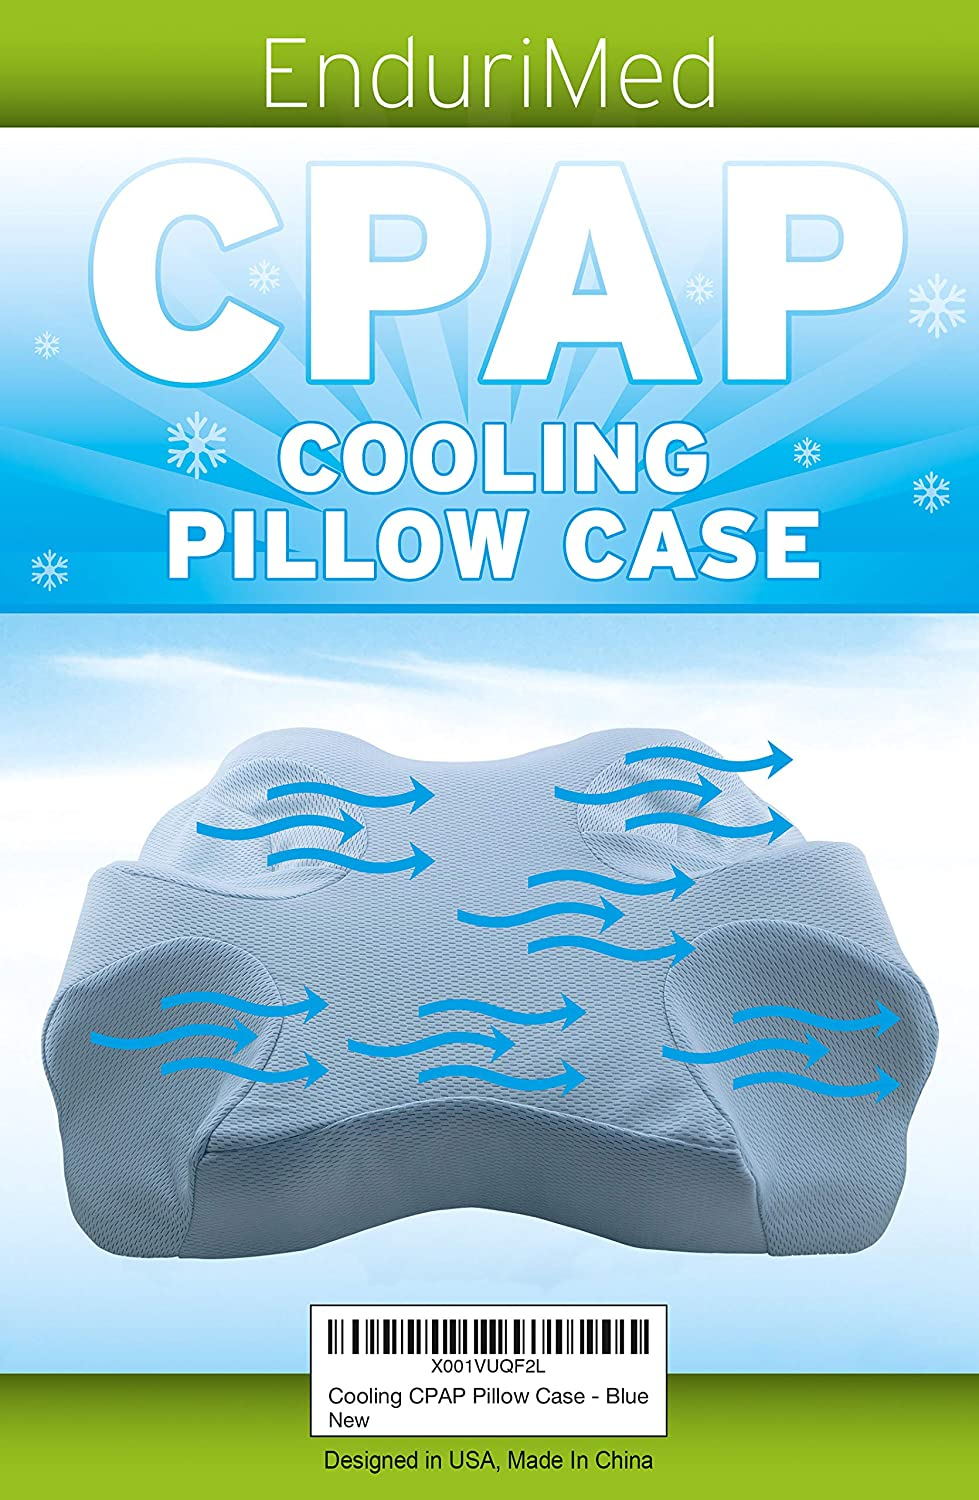 Pillow Case for Use with Endurimed CPAP Comfort Pillow - Cooling Fabric, Blue